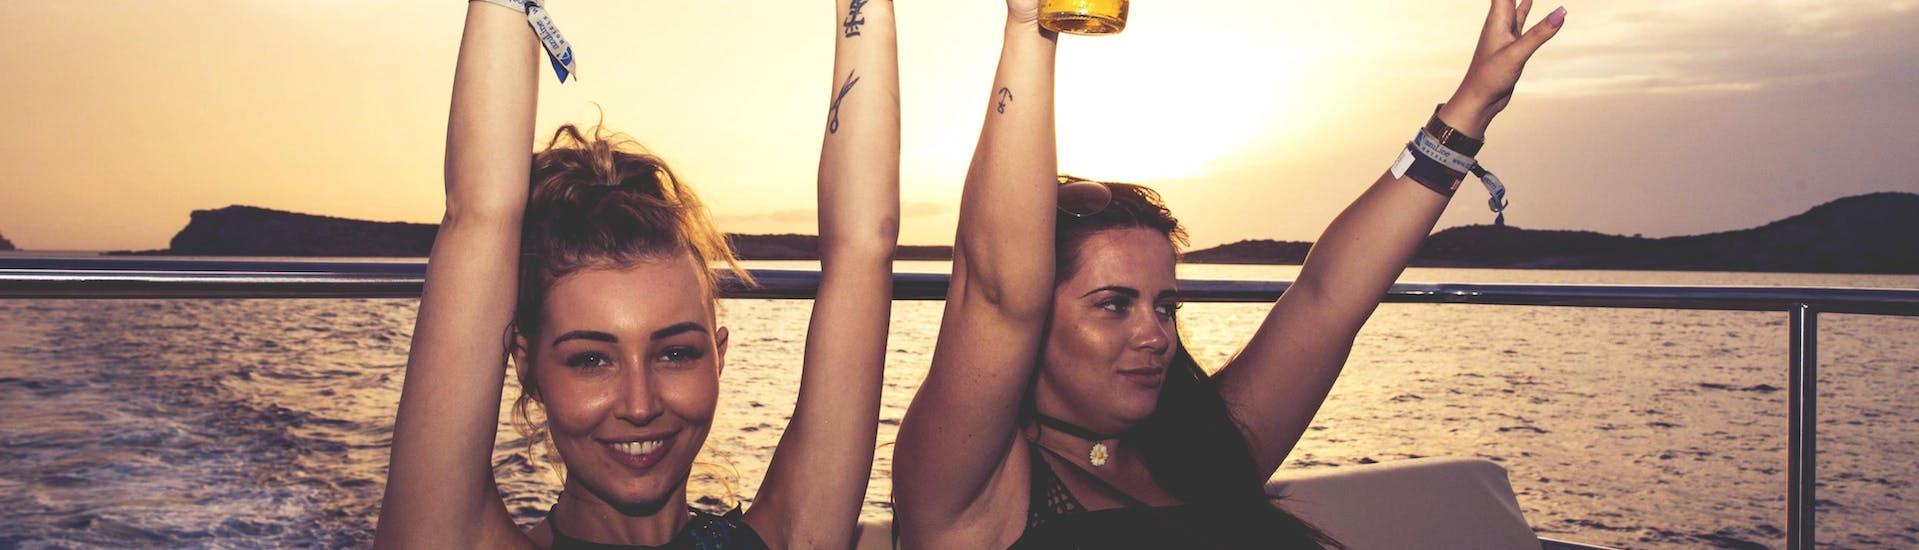 Party Boat Tour on Saturday with Dancing at Sunset